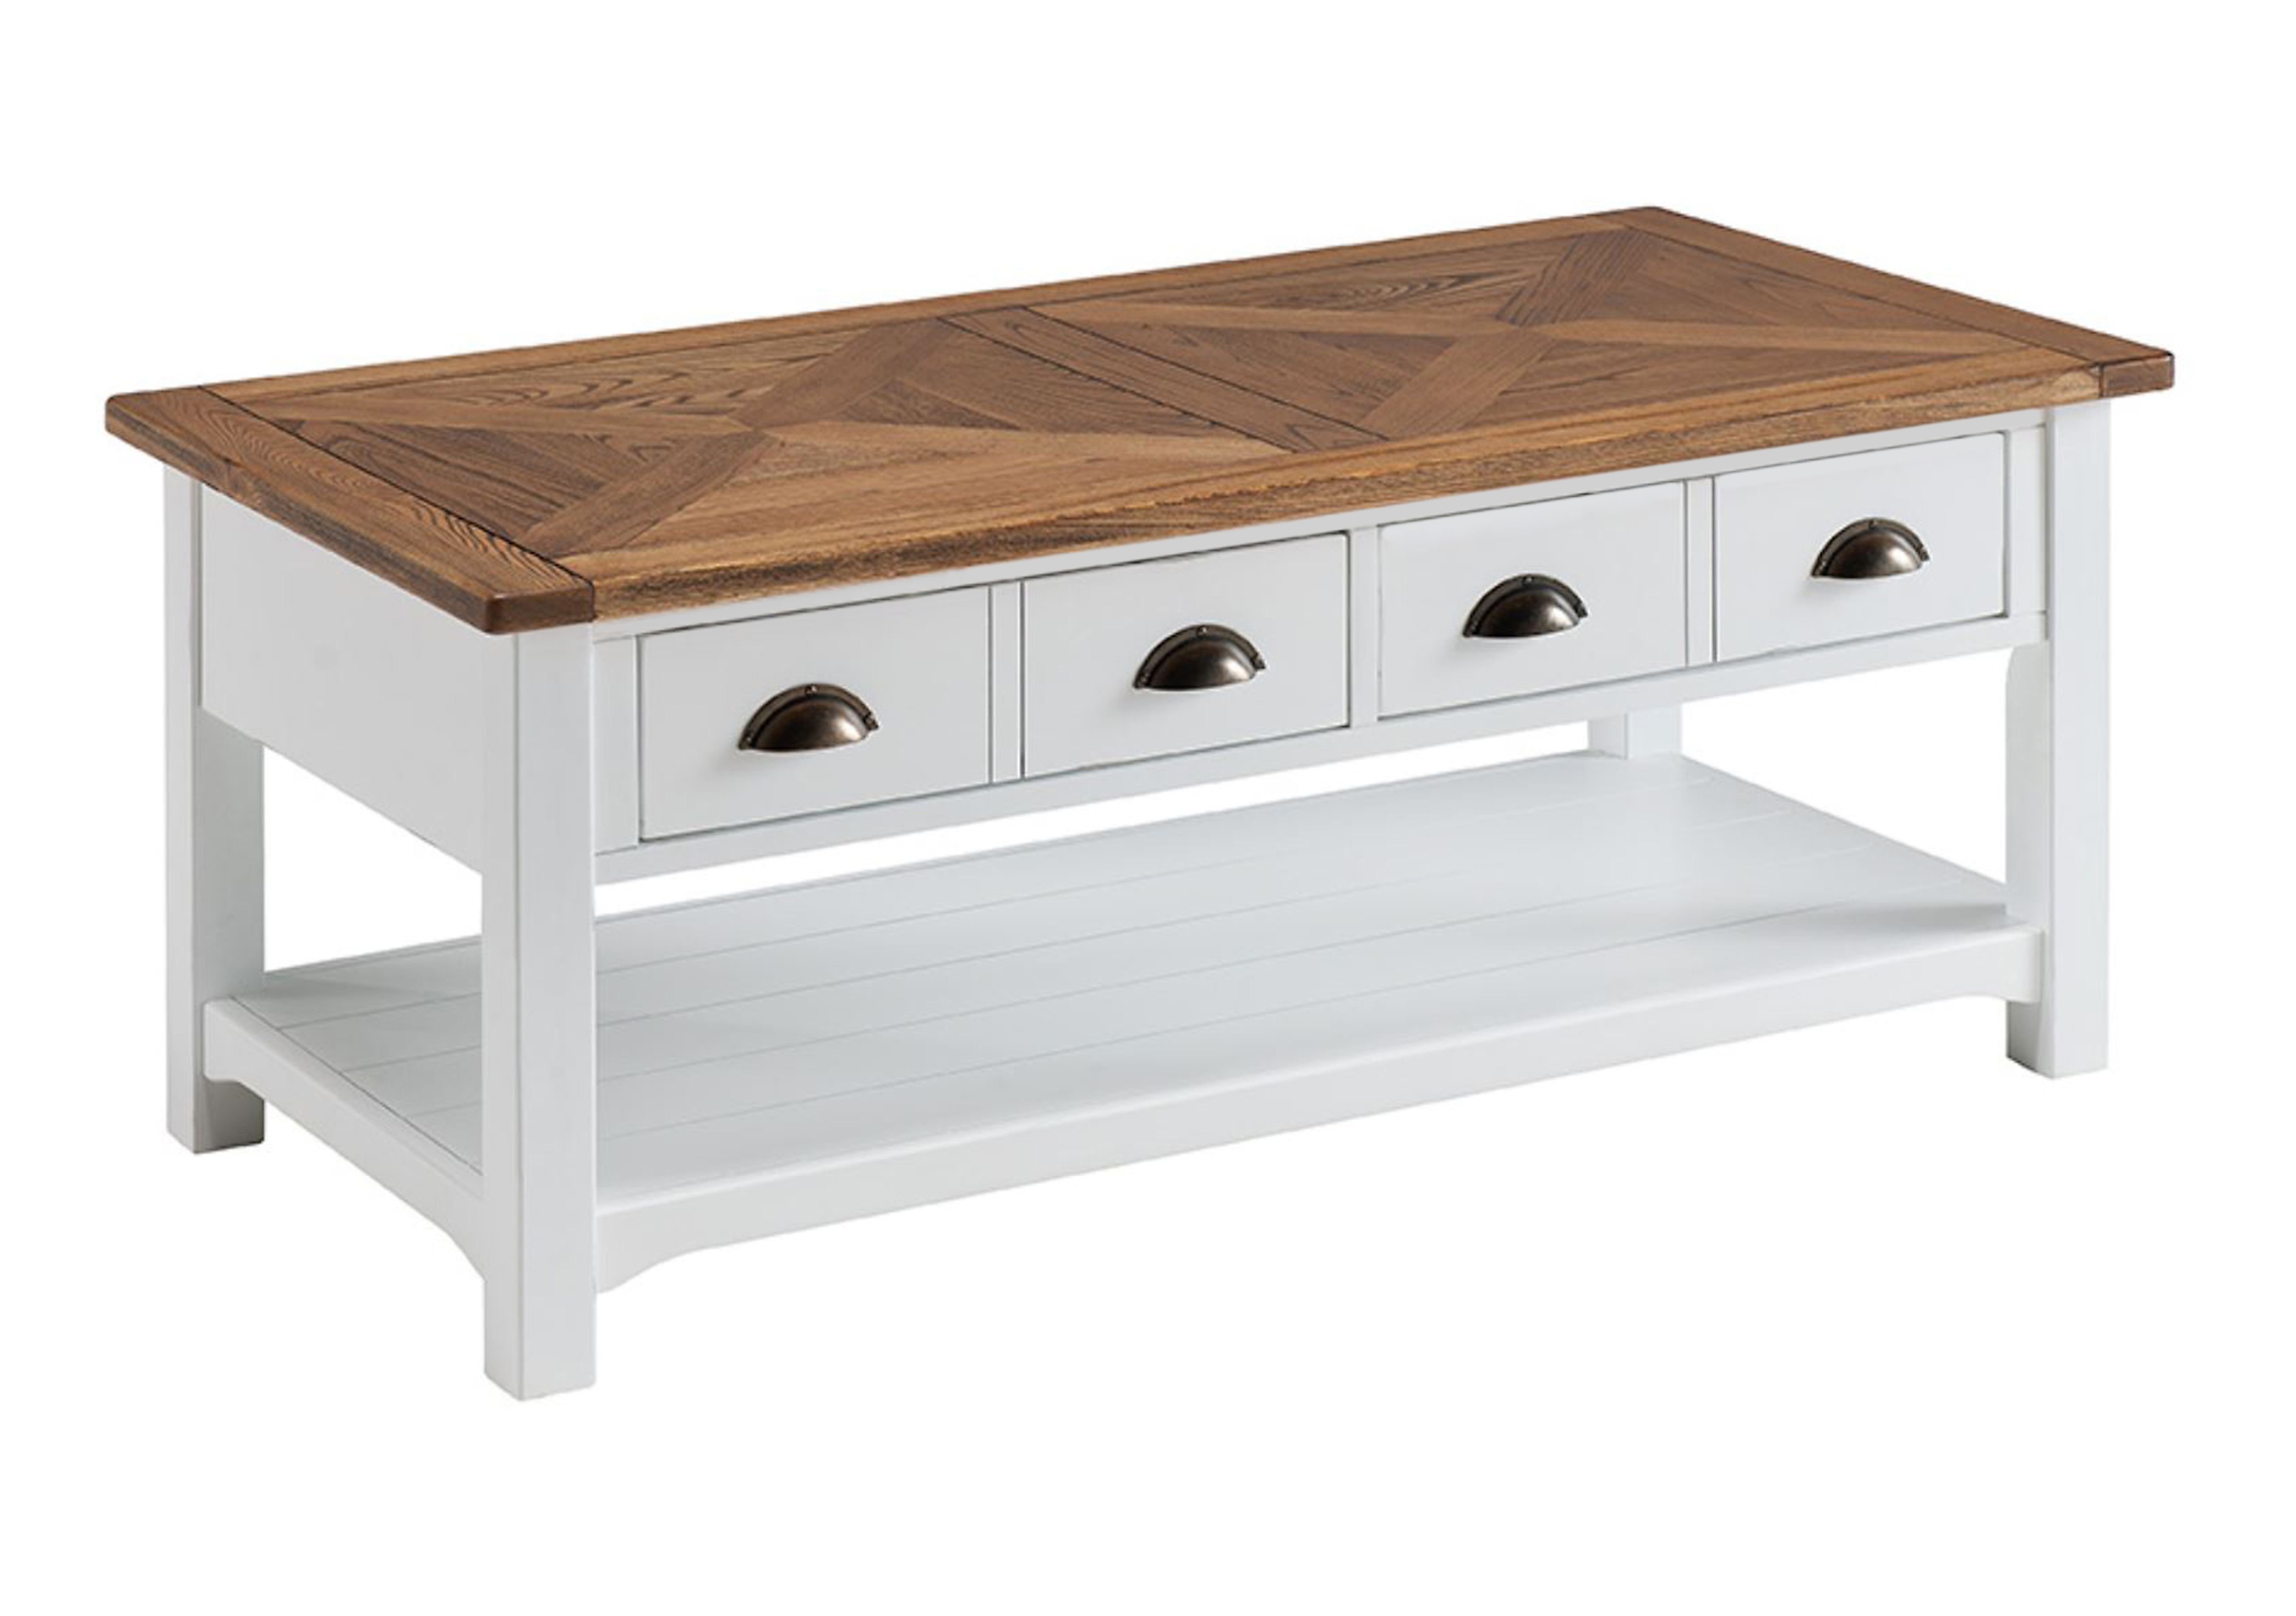 Parquet Coffee Table Limited Stock Furnitureland Furniture